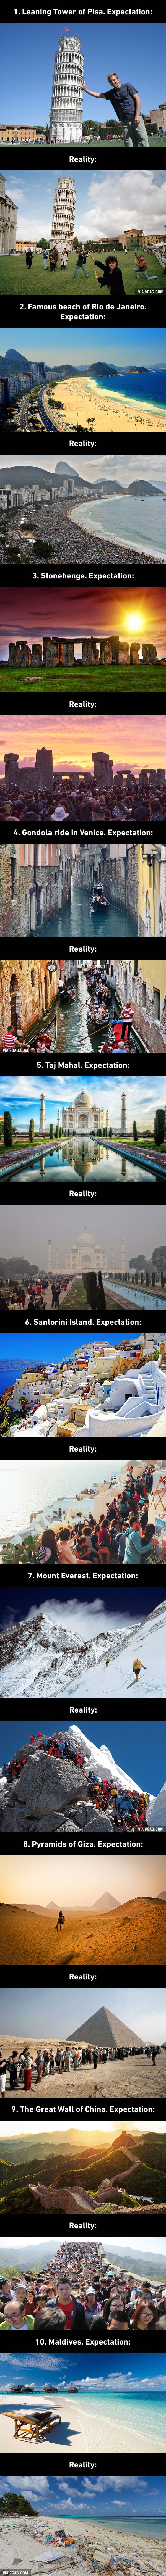 Top 10 Travel Expectations Vs Reality Which May Make You Rethink Your Vacation